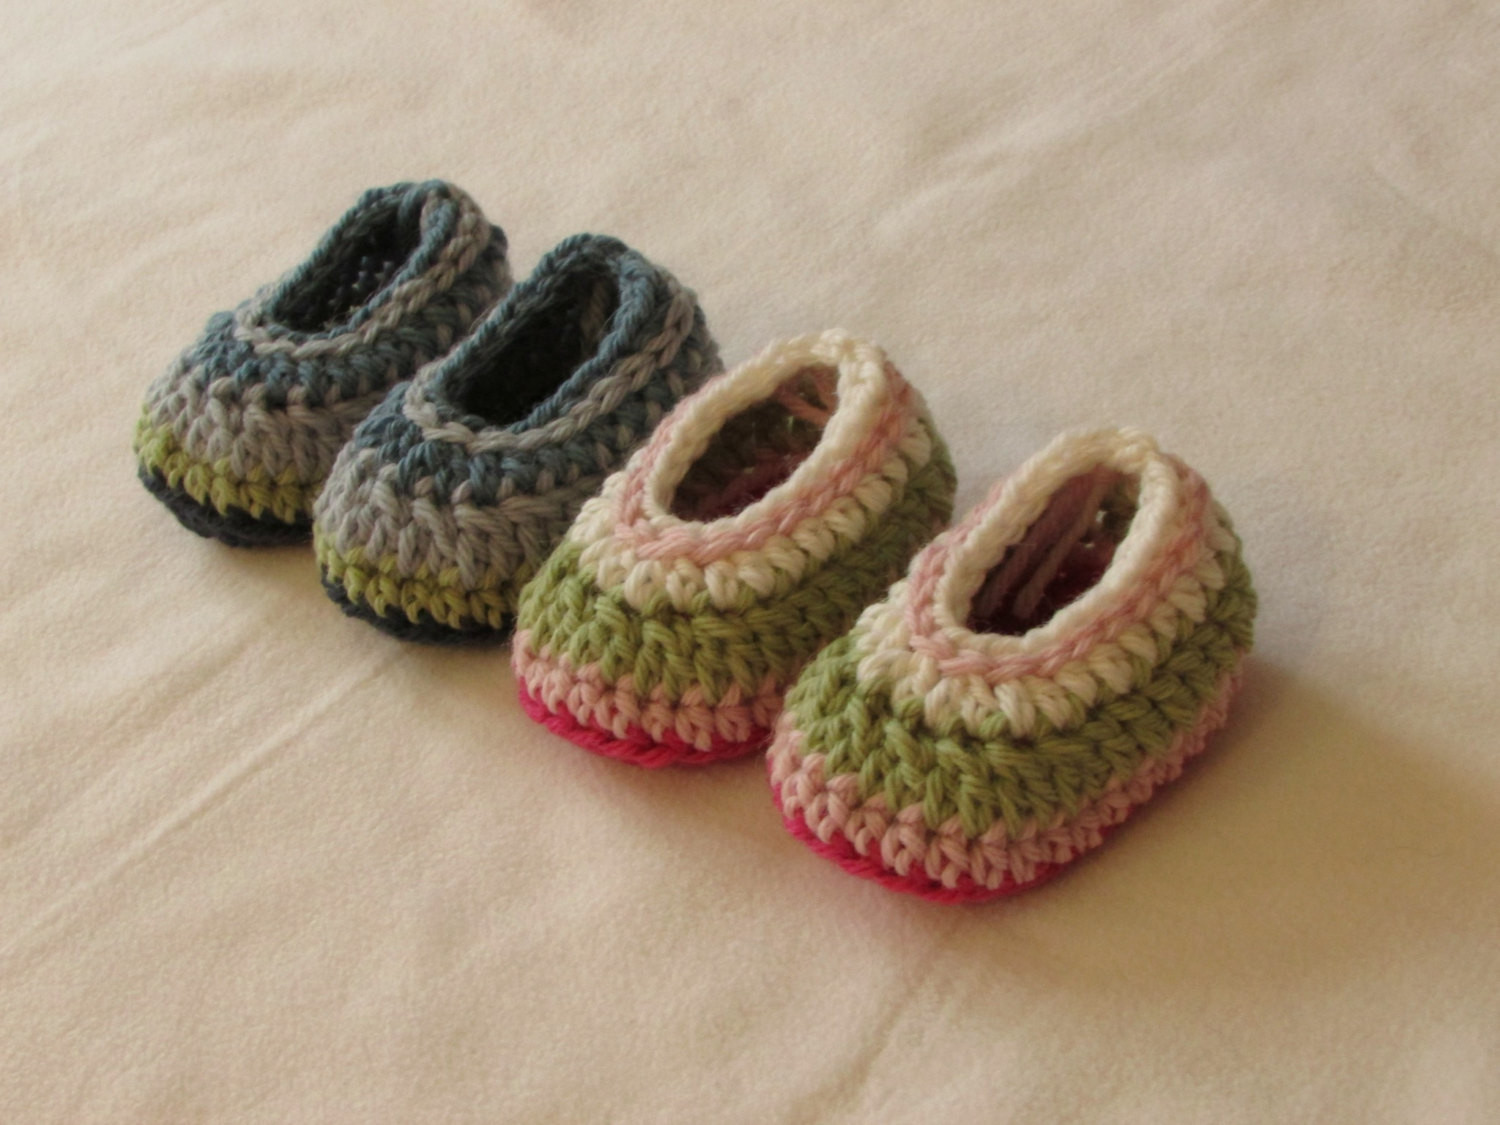 Crochet Baby Booties Luxury Crochet Simple Striped Baby Booties Shoes Written Pattern Of Crochet Baby Booties Fresh Crochet Baby Mary Jane Booties Free Patterns